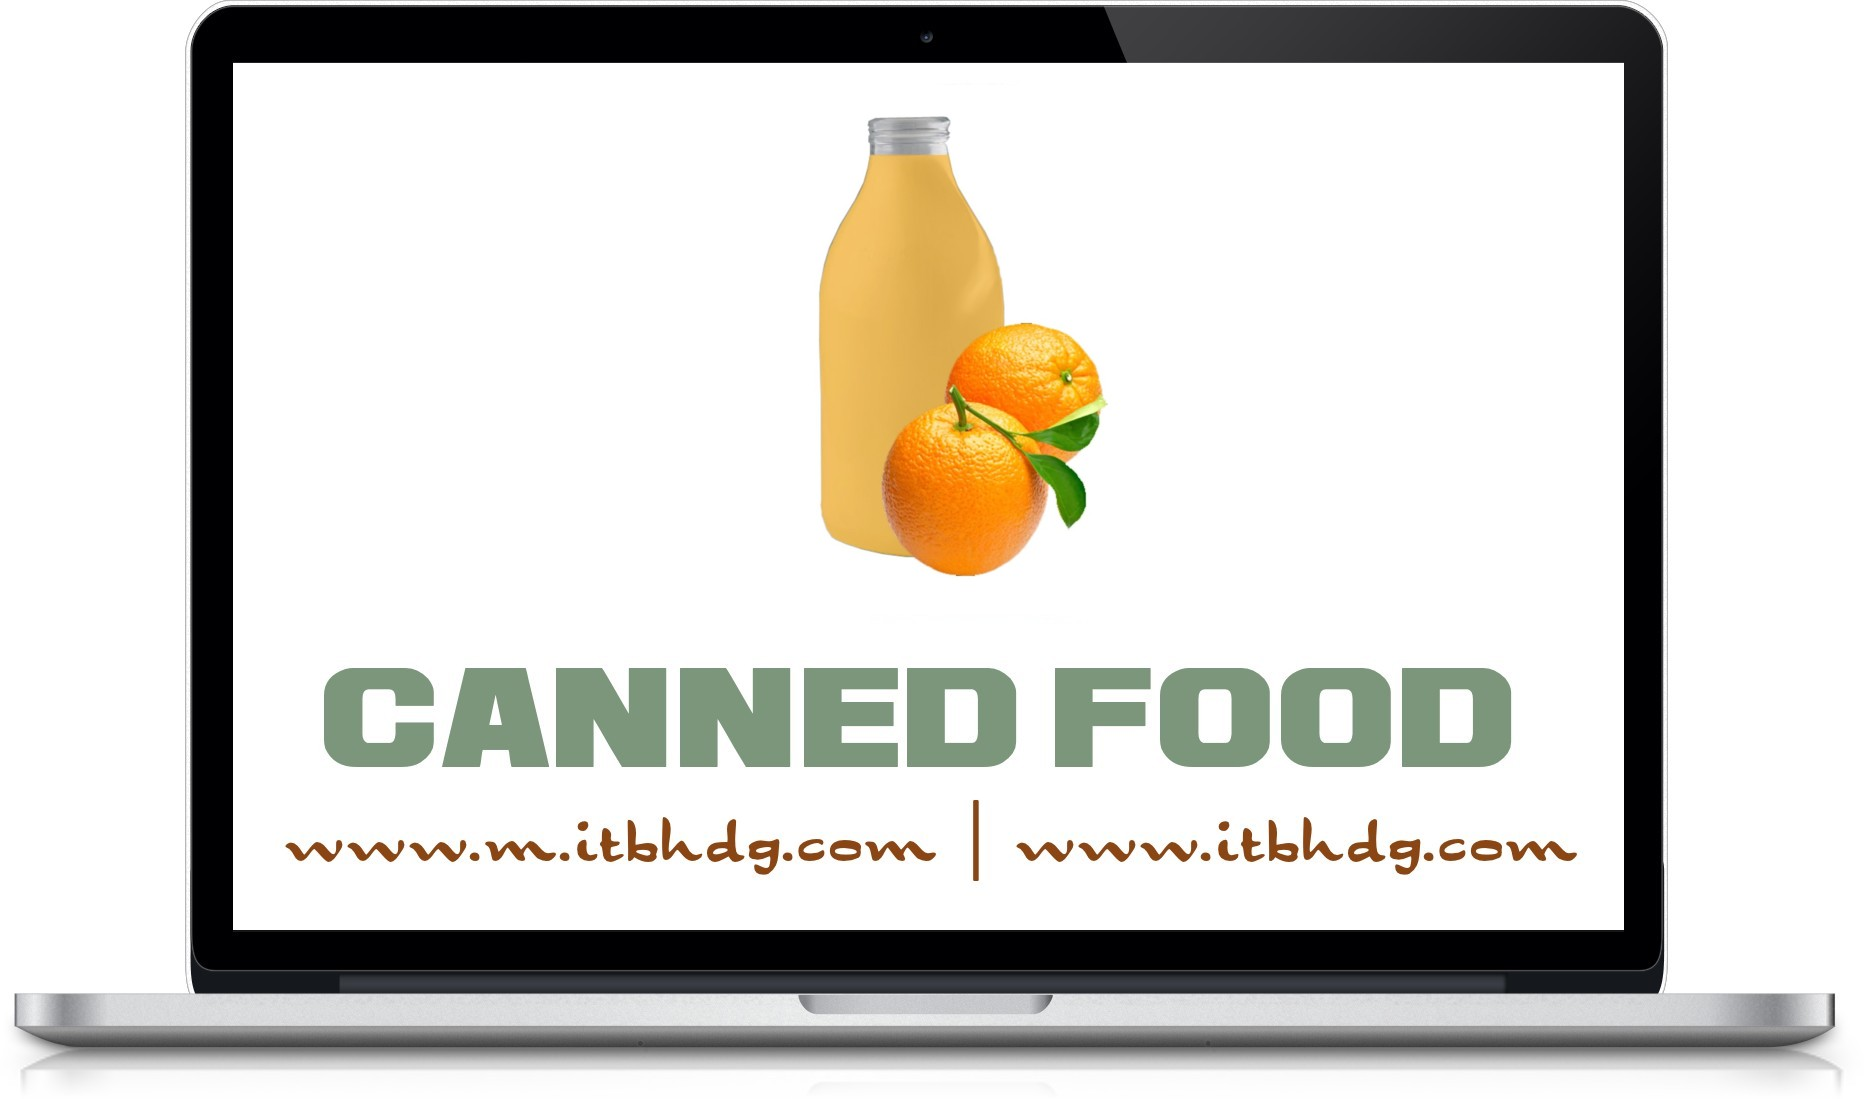 FDA Registration of companies selling foods in flexible pouches or tetra paks | www.m.itbhdg.com | www.itbhdg.com